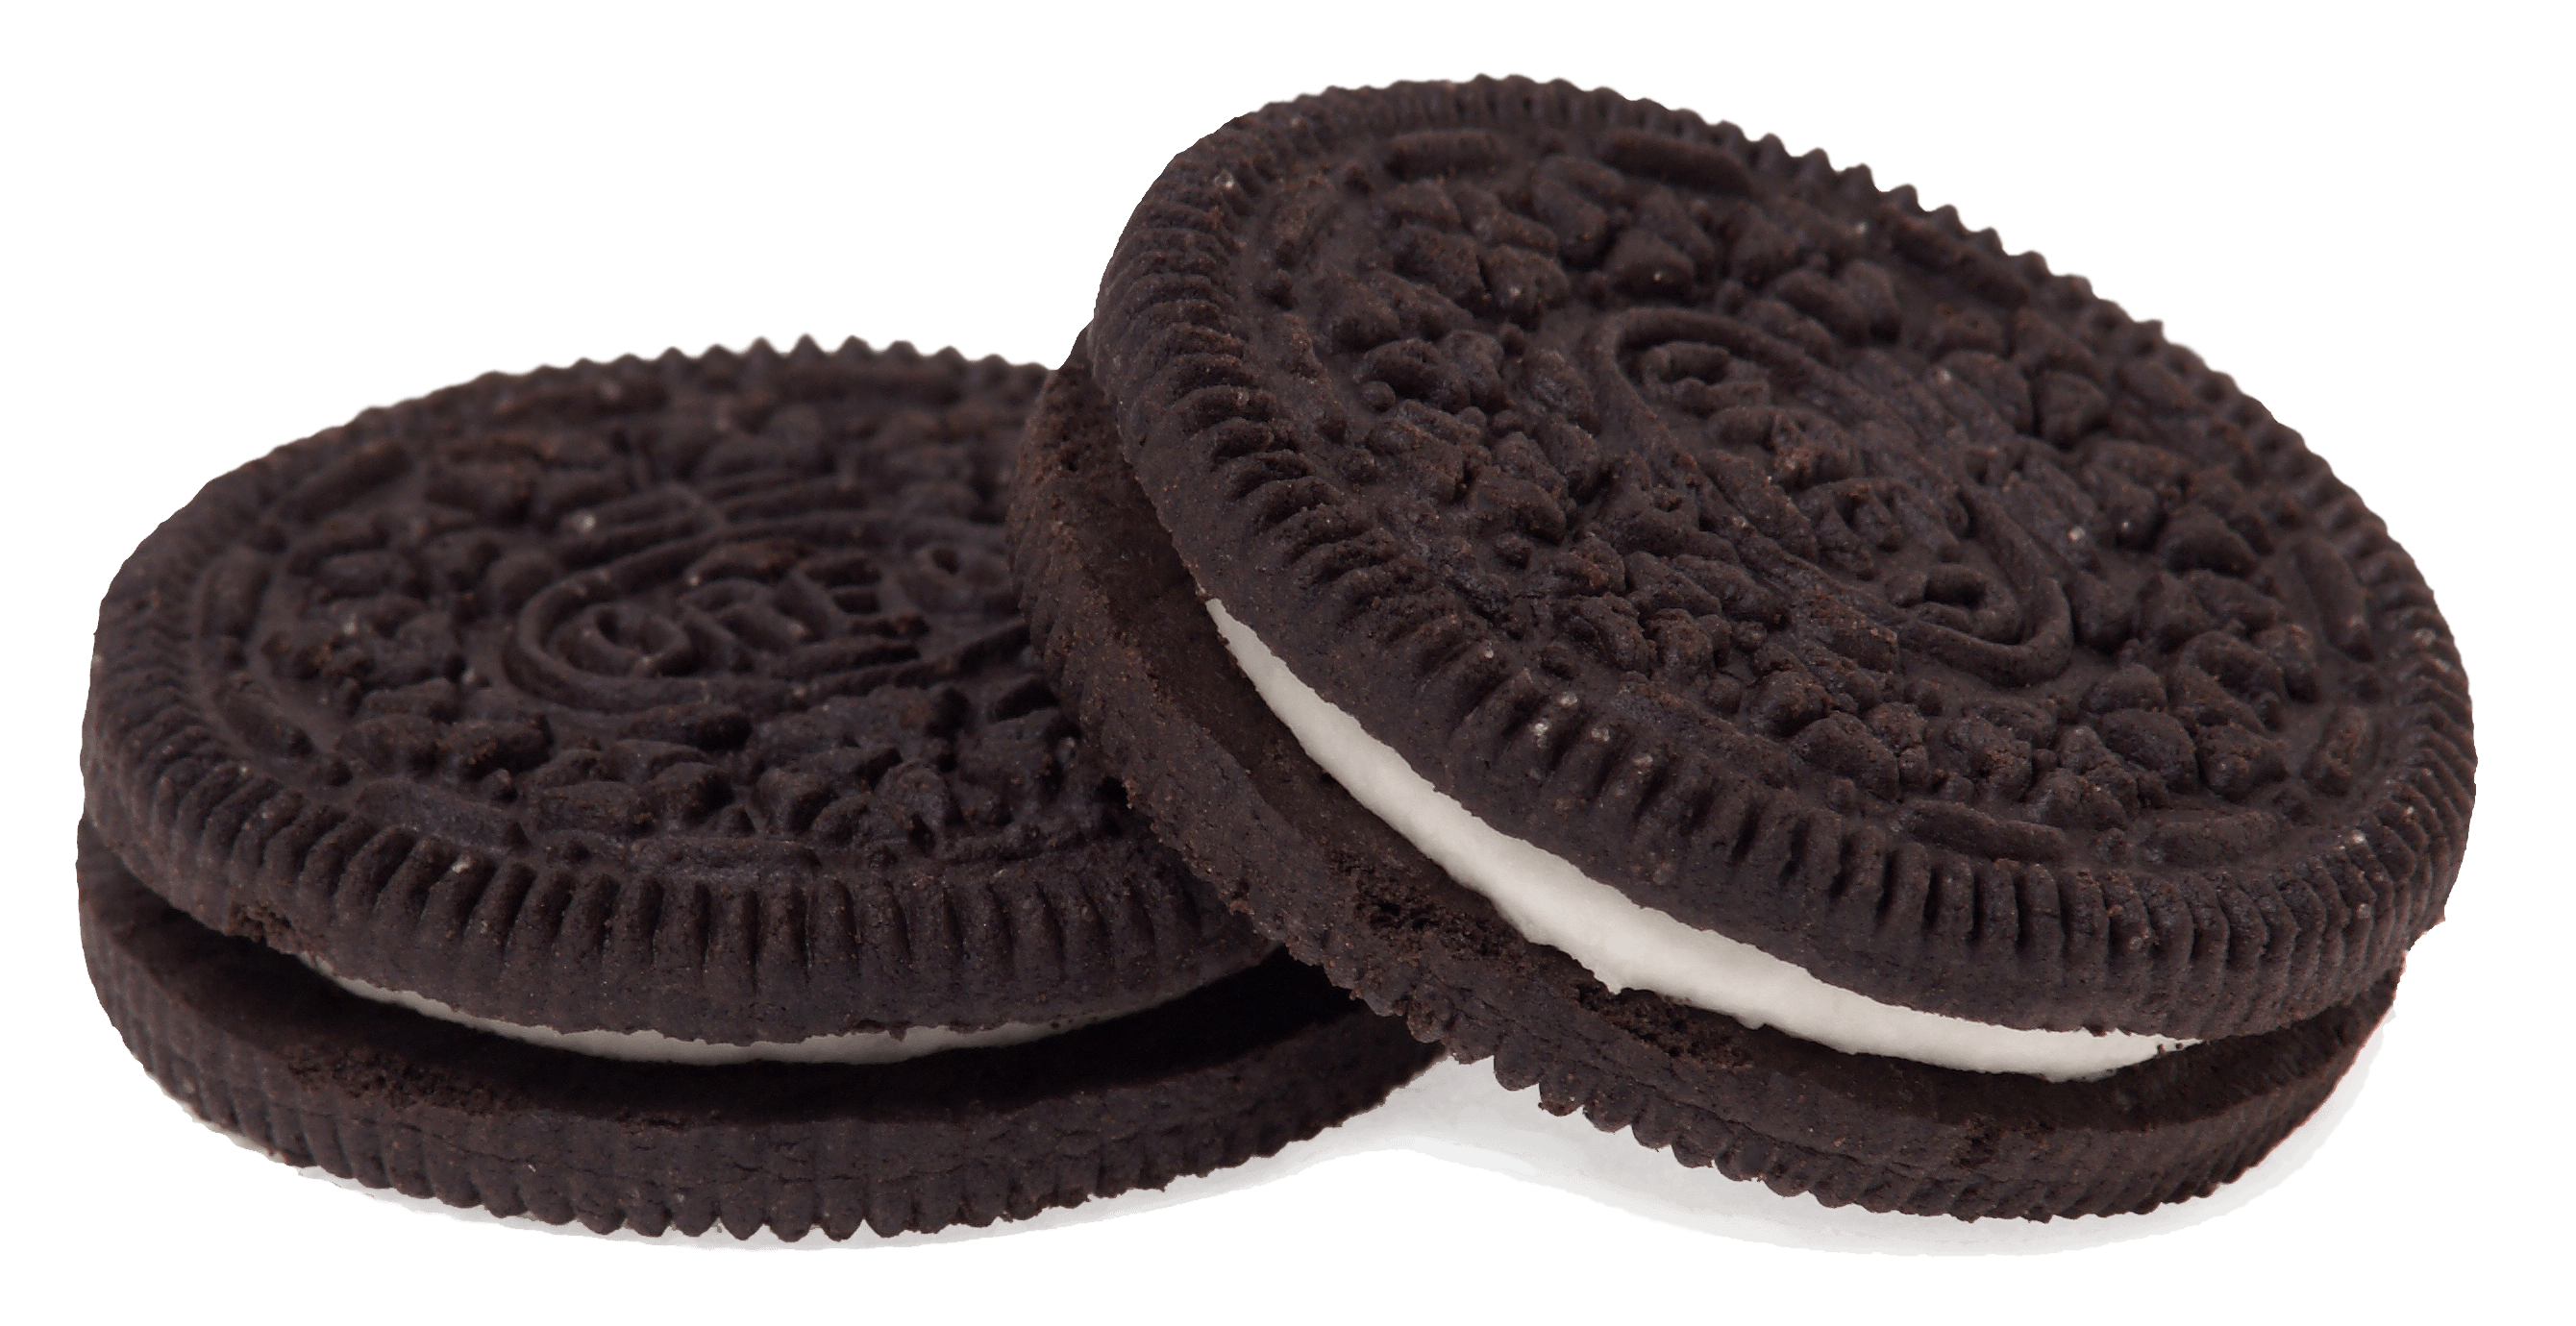 Oreo clipart side view. Couple of biscuits transparent